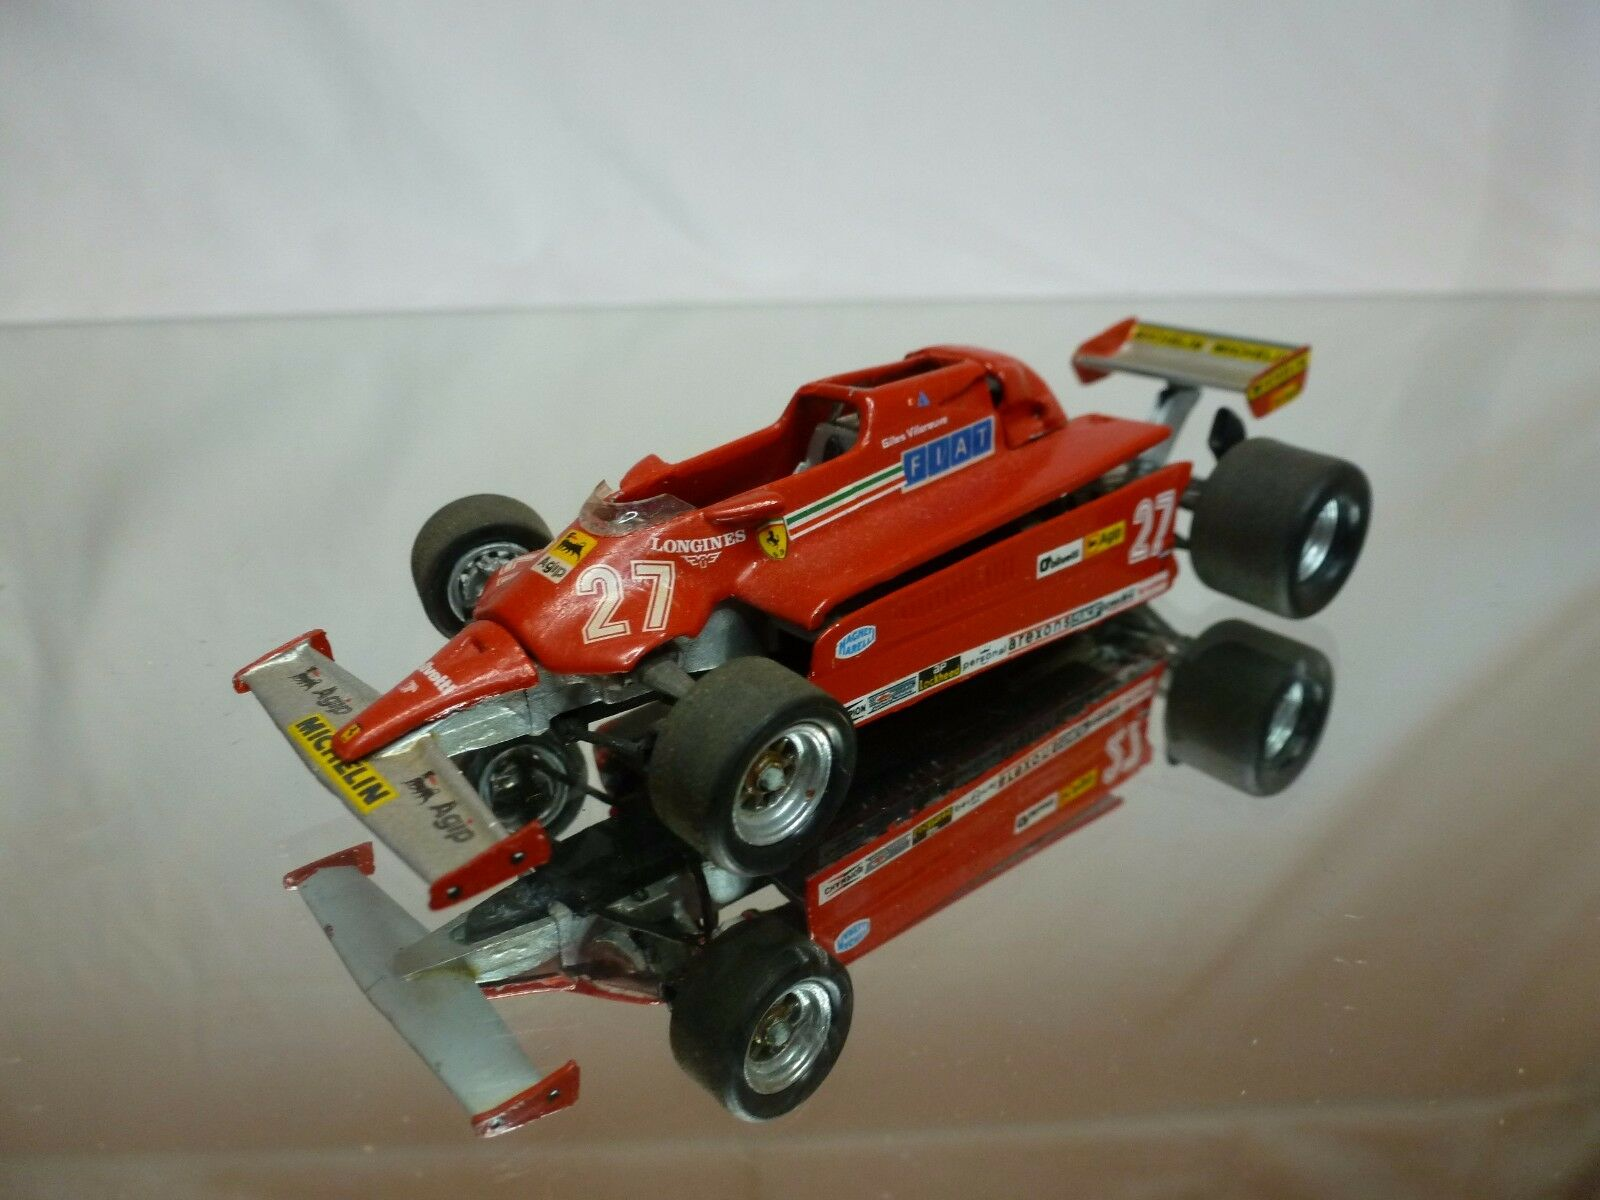 KIT (built) FERRARI 126C 1981 - GILLES VILLENEUVE No 27 - F1 RED 1 43 - NICE